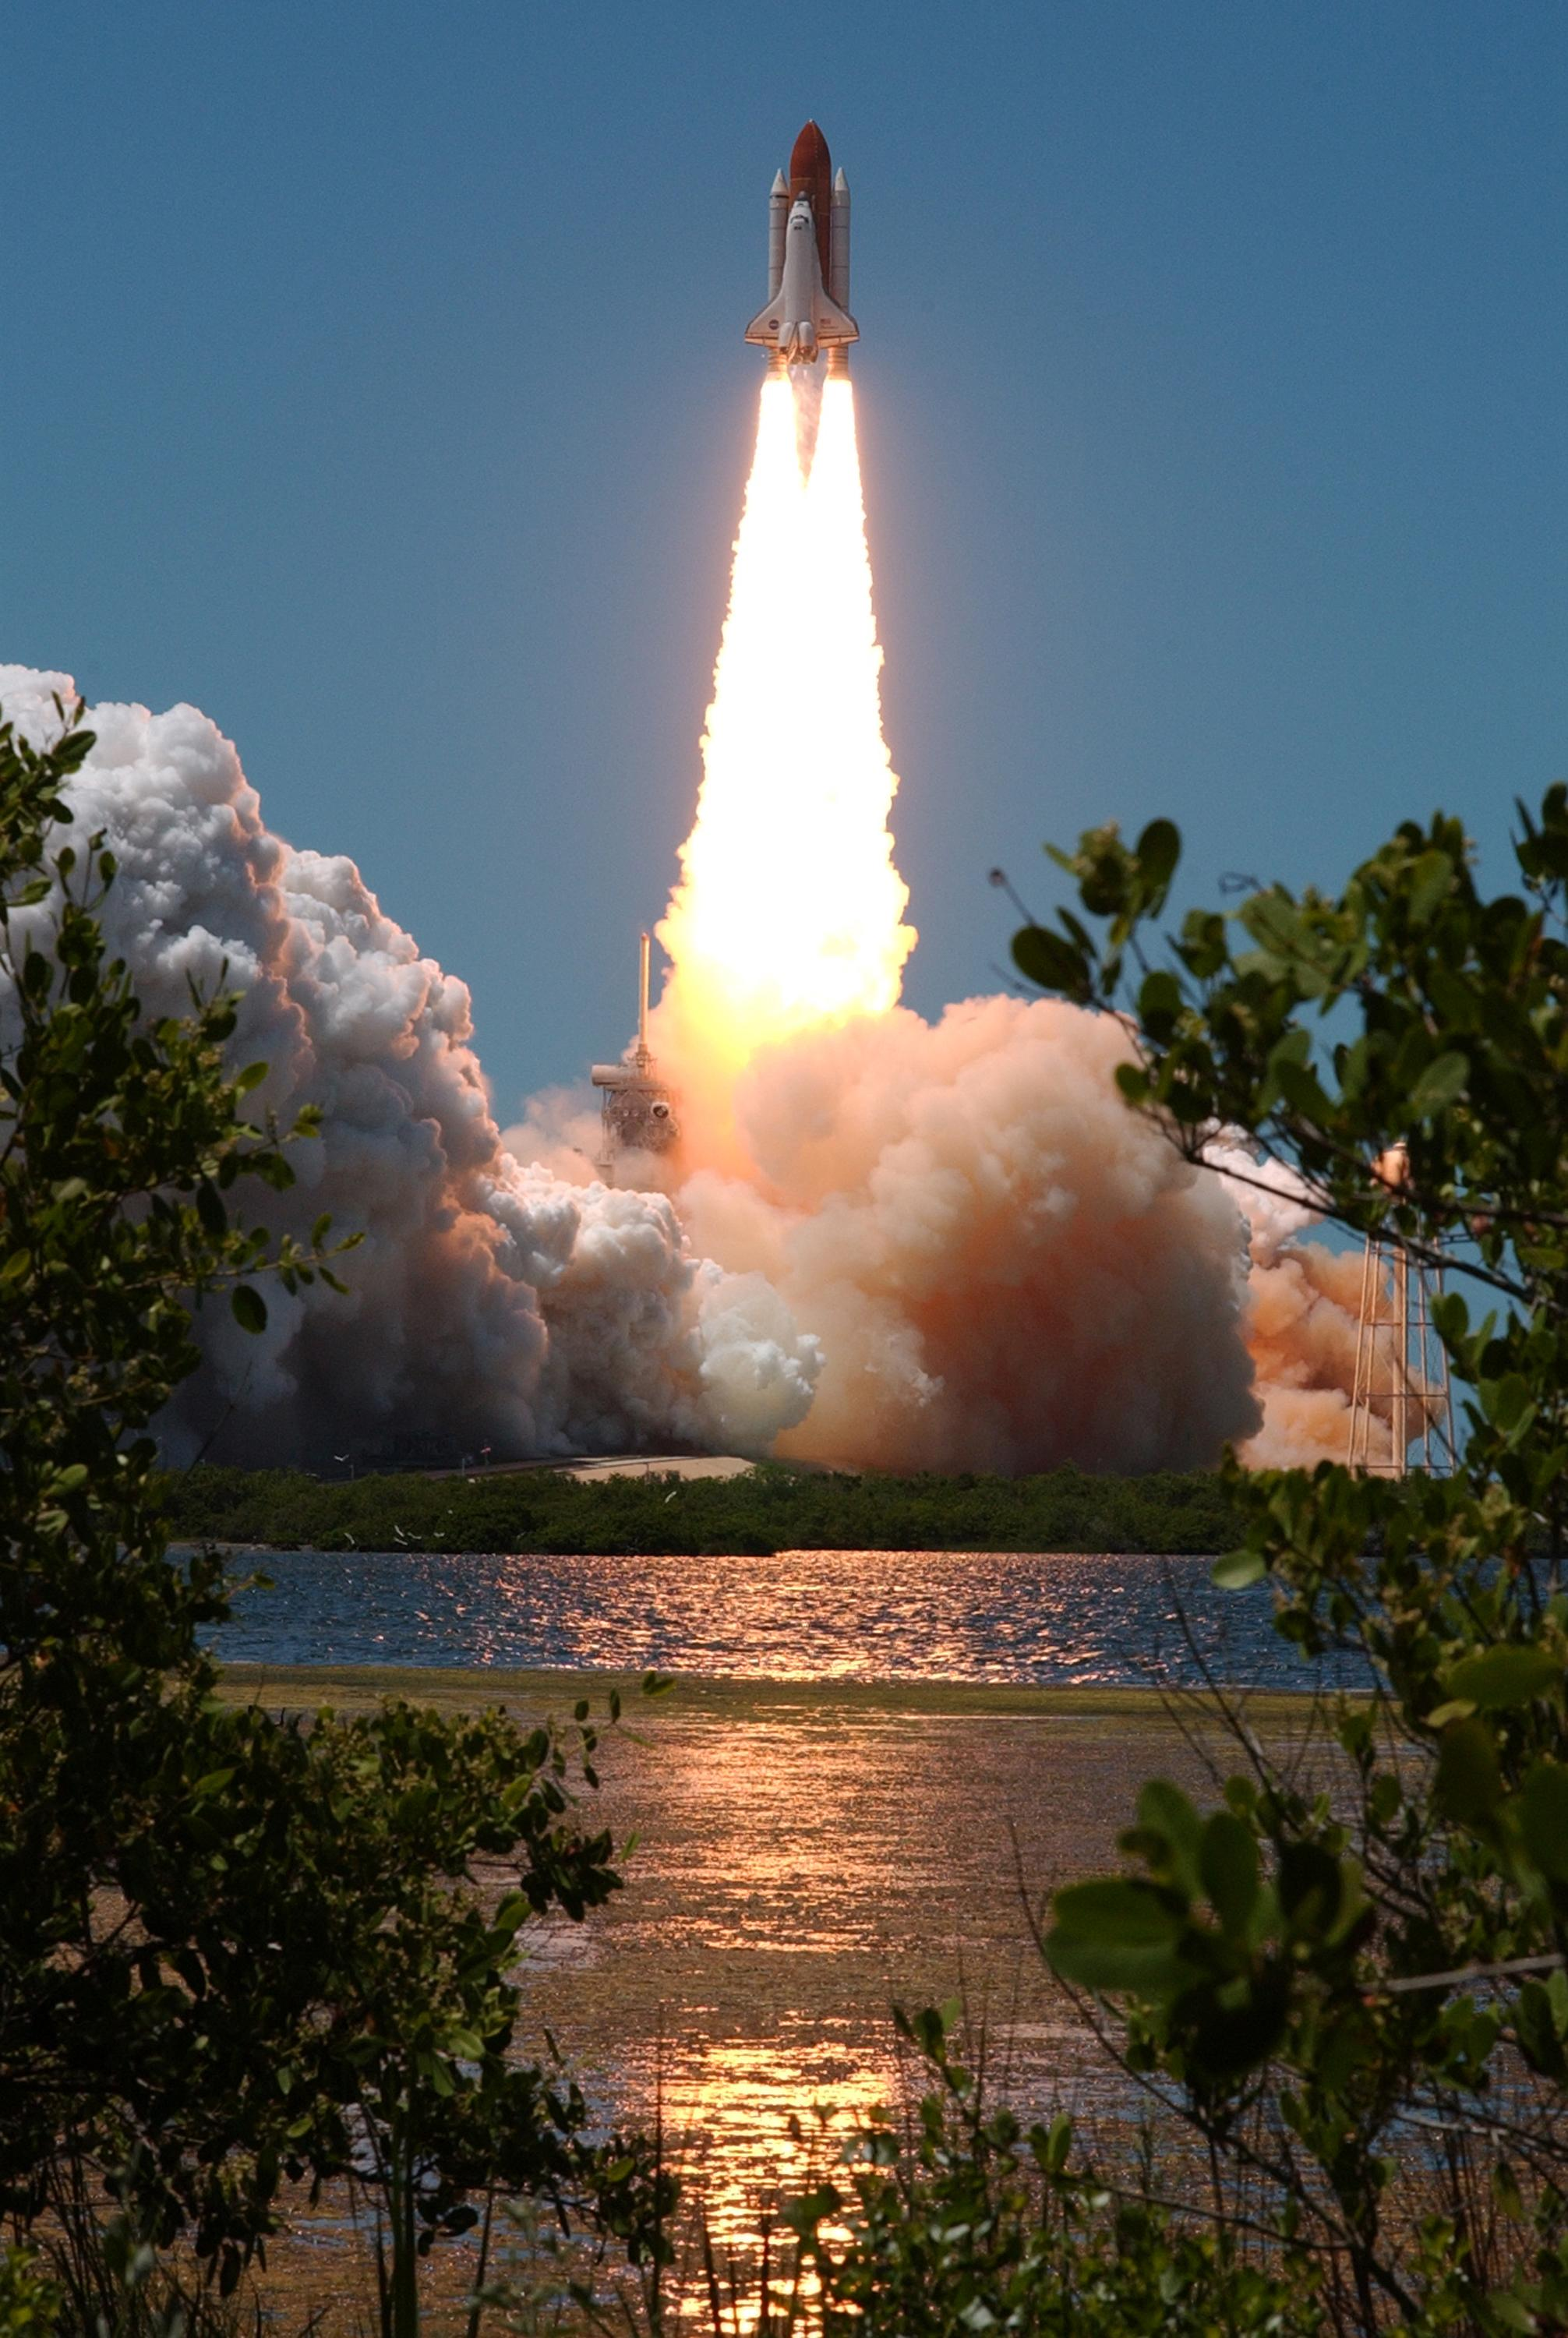 NASA STS-121 DISCOVERY LAUNCH IGNITION 8x10 SILVER HALIDE PHOTO PRINT